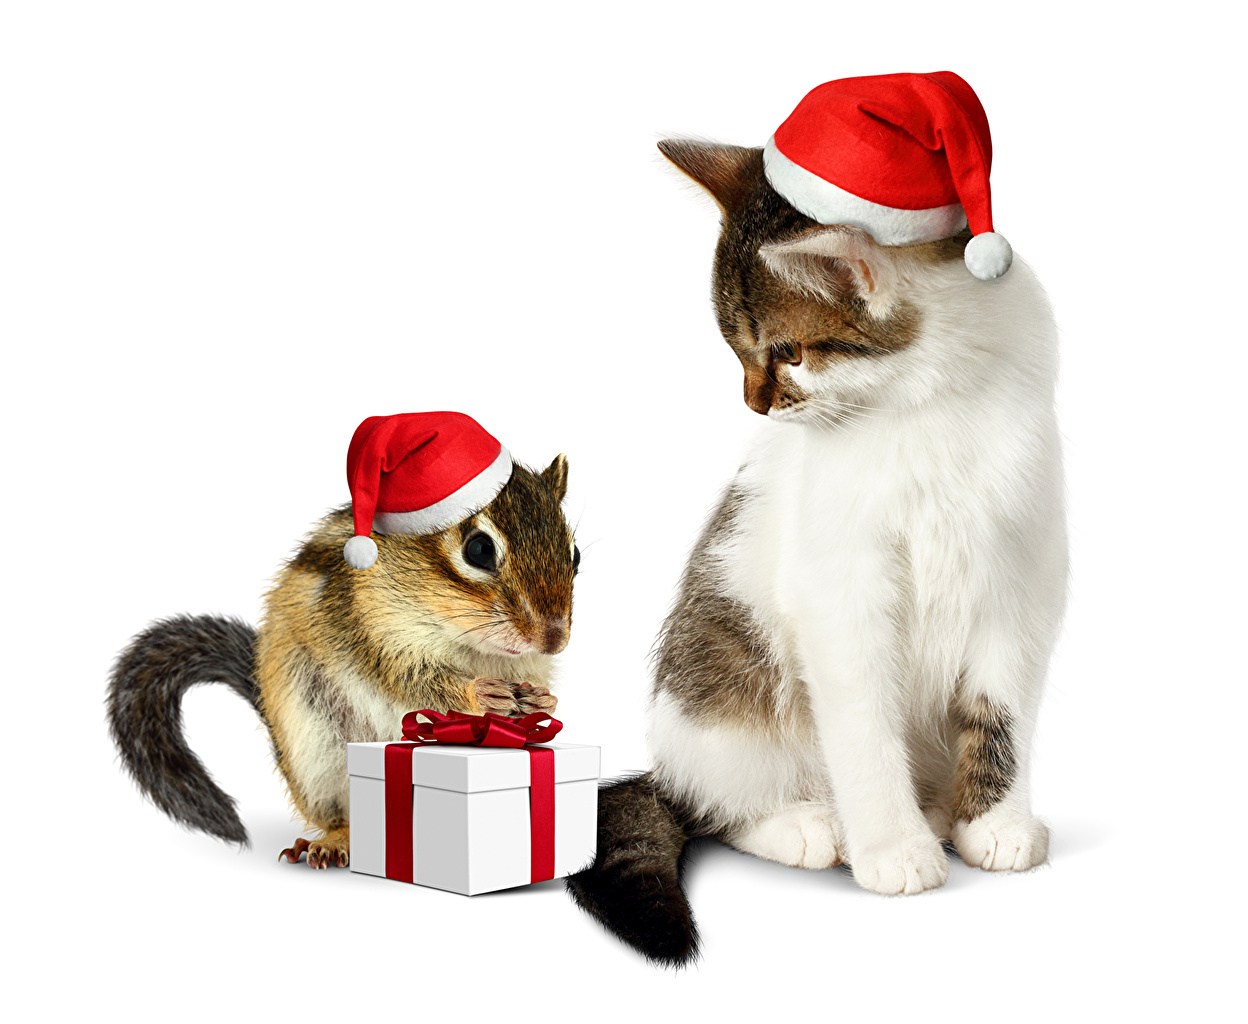 Photos Cats Chipmunks Christmas Two Winter hat Gifts animal Holidays White background cat New year 2 present Animals